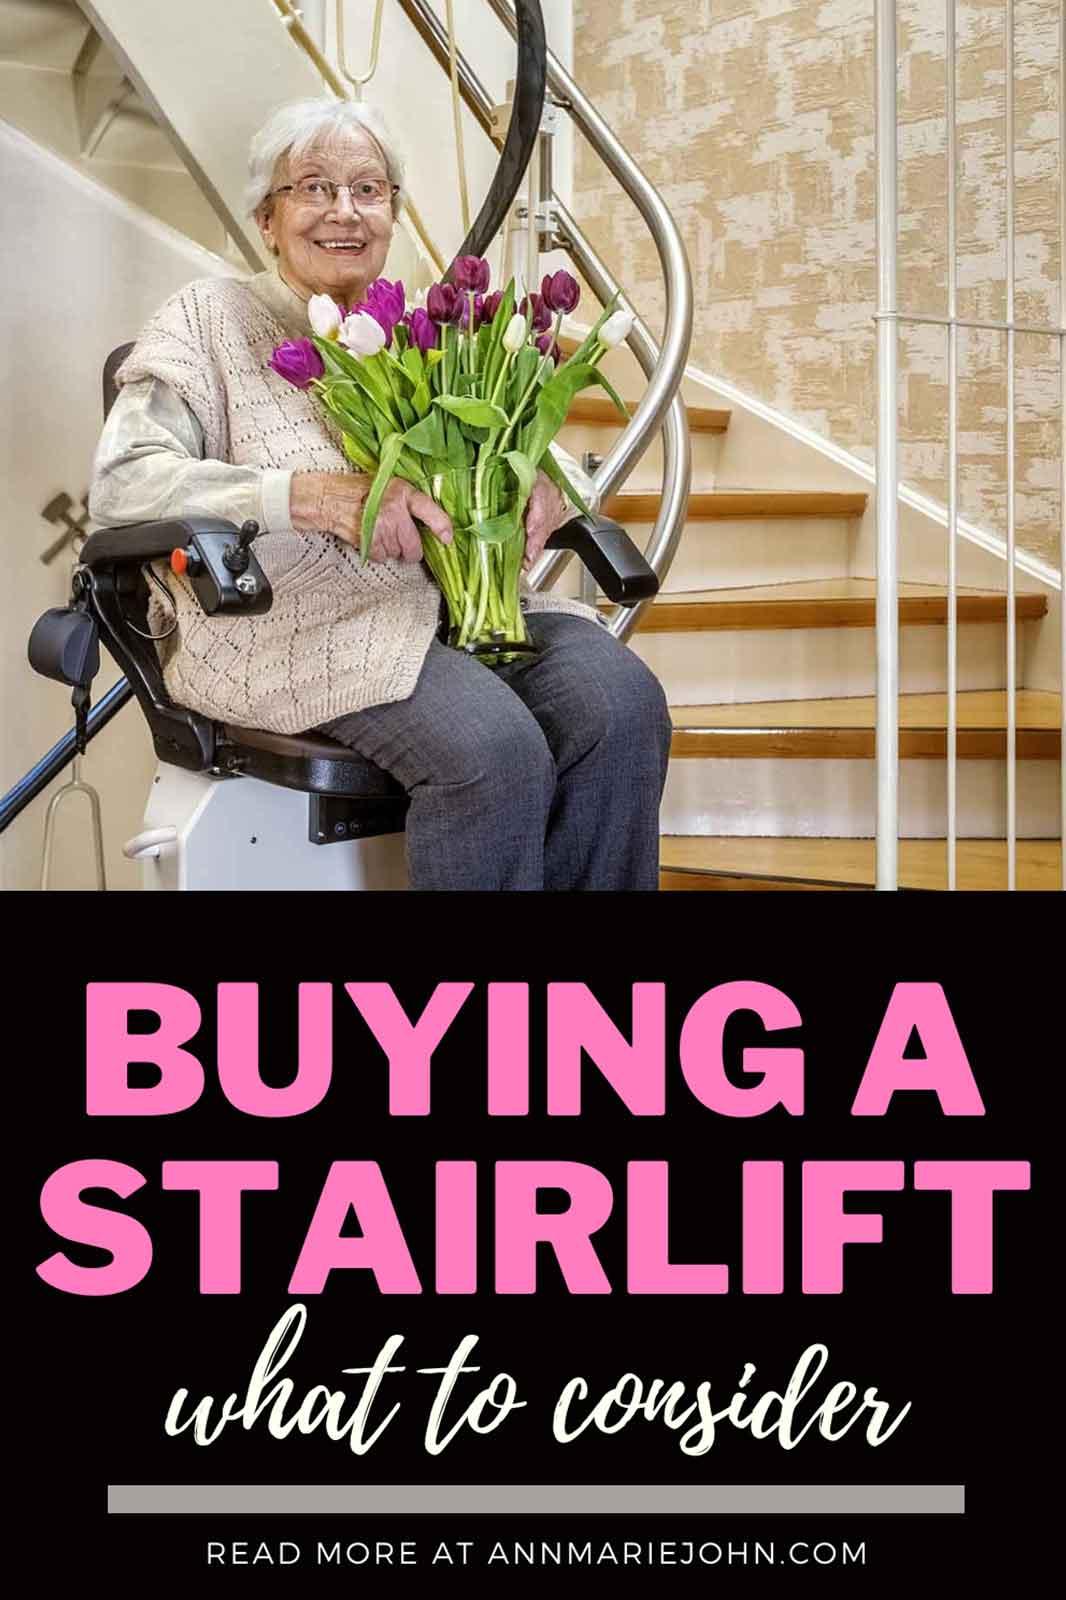 Planning To Buy A Stairlift? Here's What To Consider